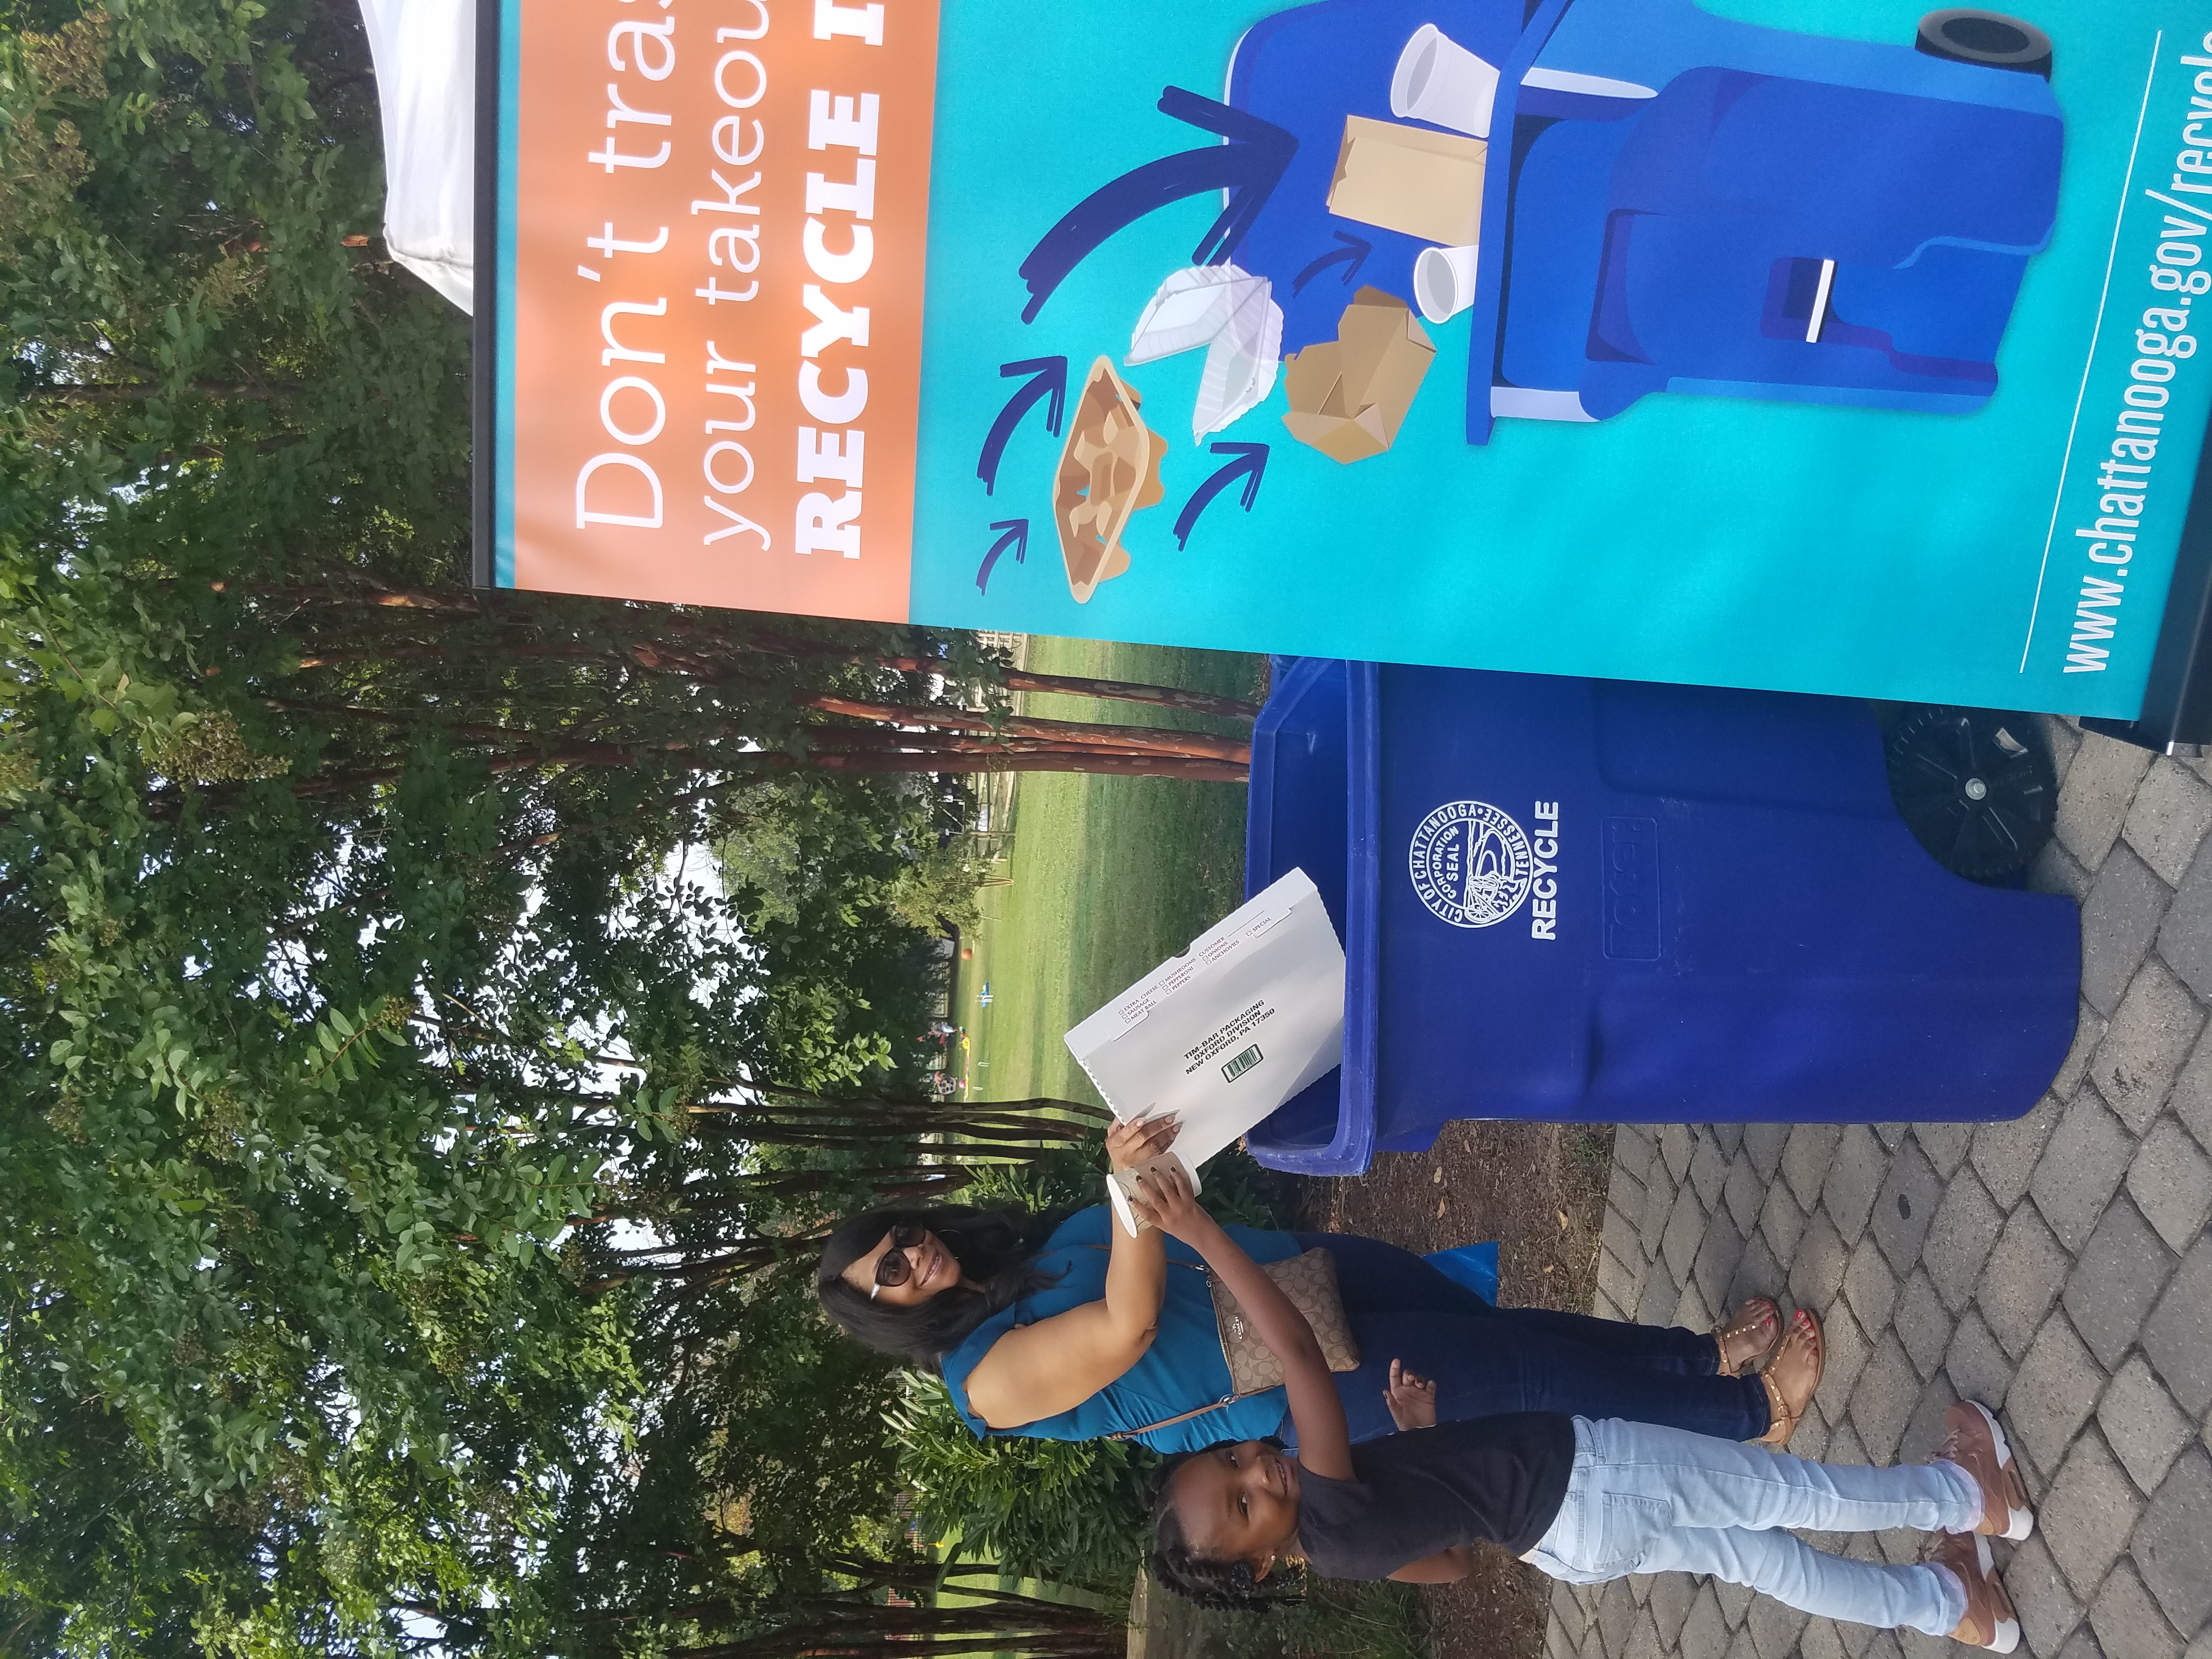 Chattanooga residents recycle foodservice packaging at an event at chattanooga Zoo